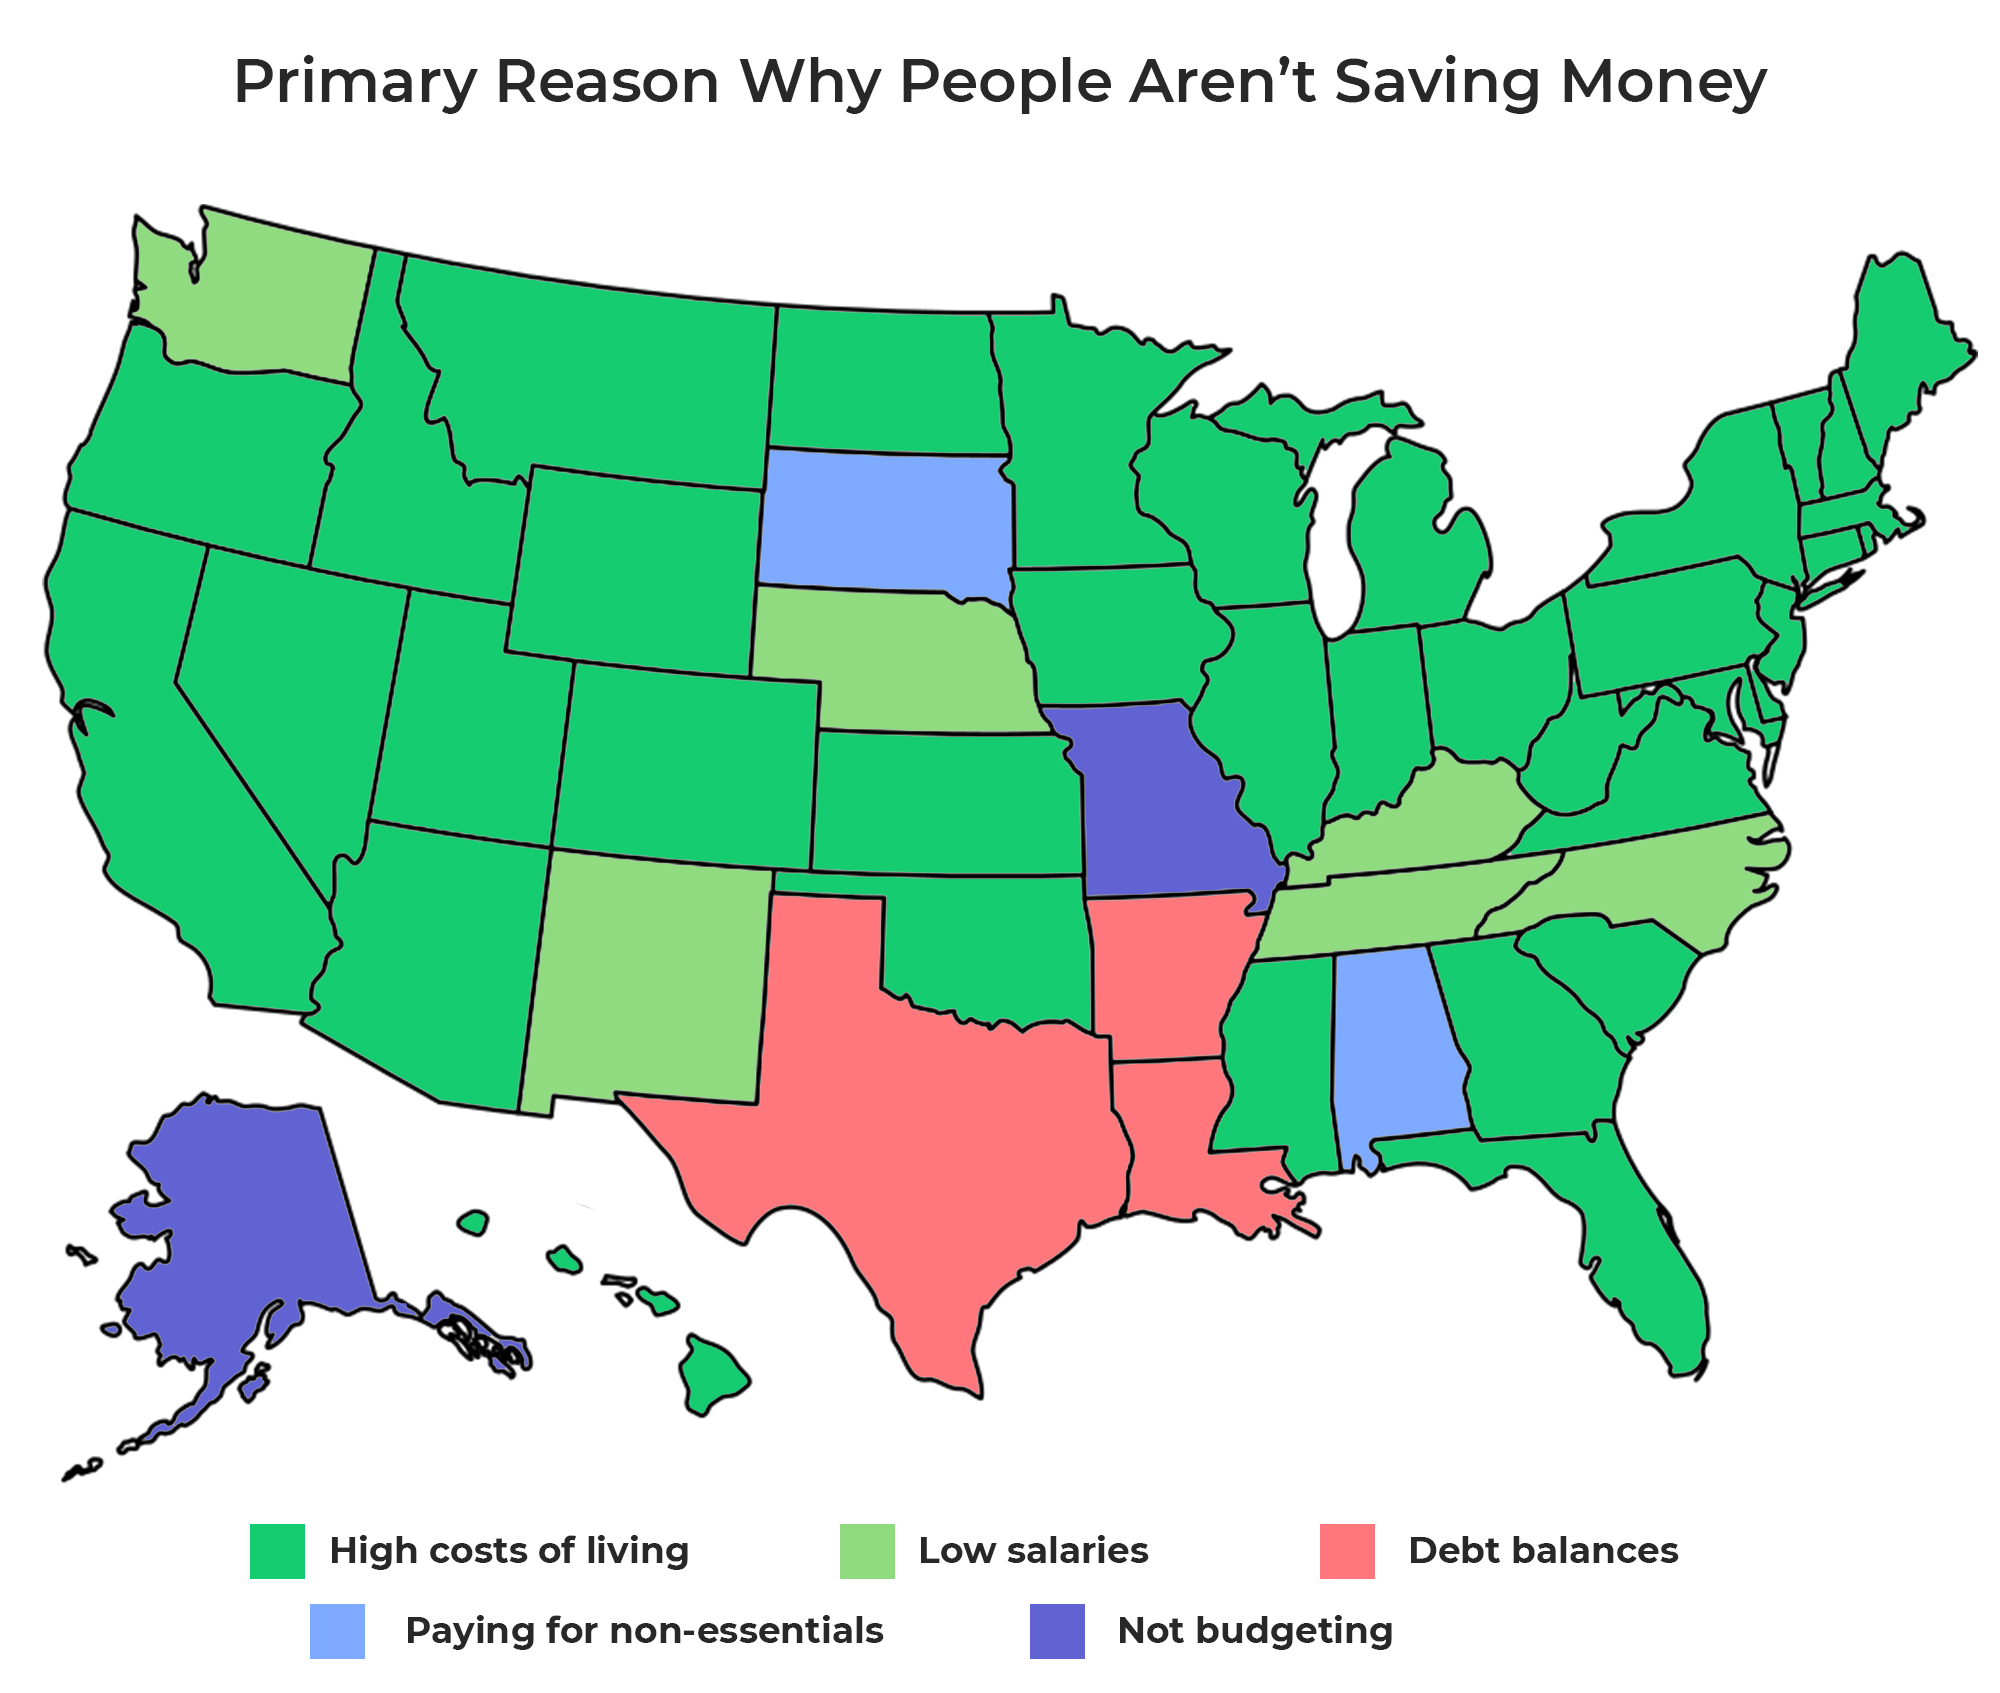 primary_reason_why_people_arent_saving_money